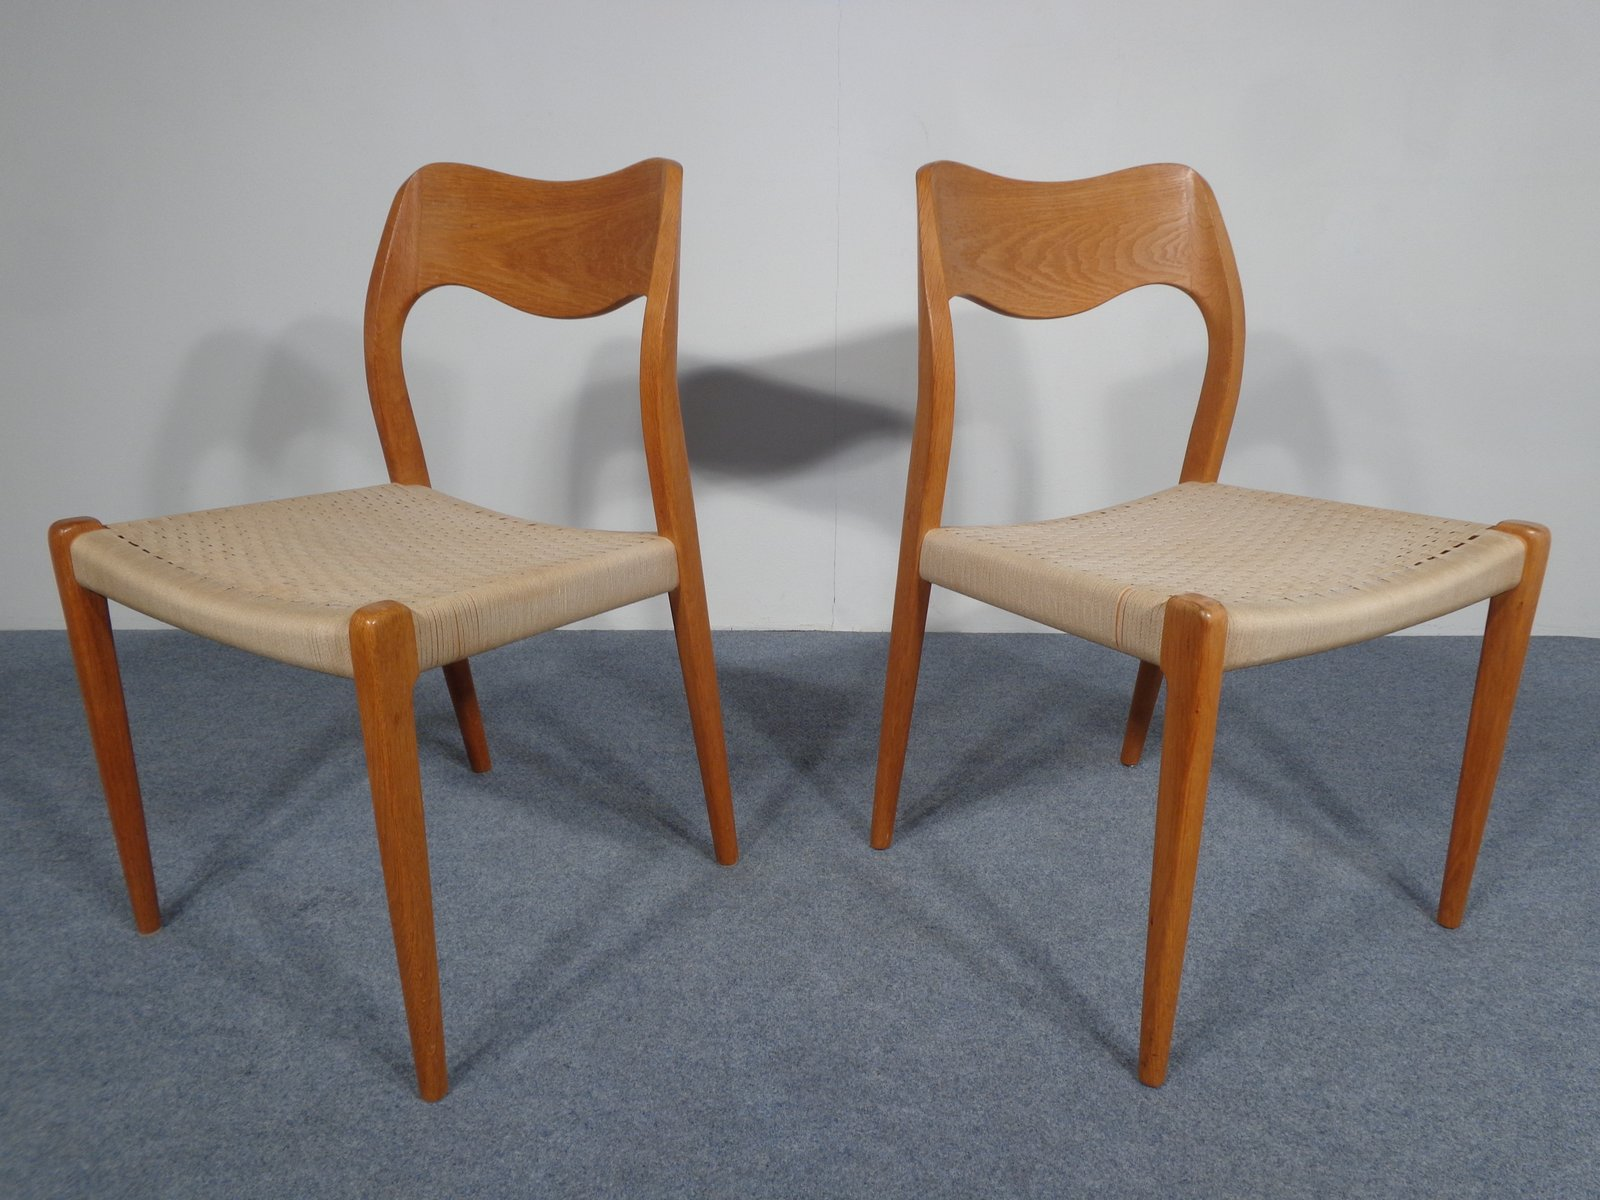 Vintage Model 71 Oak Chairs by N O M¸ller Set of 2 for sale at